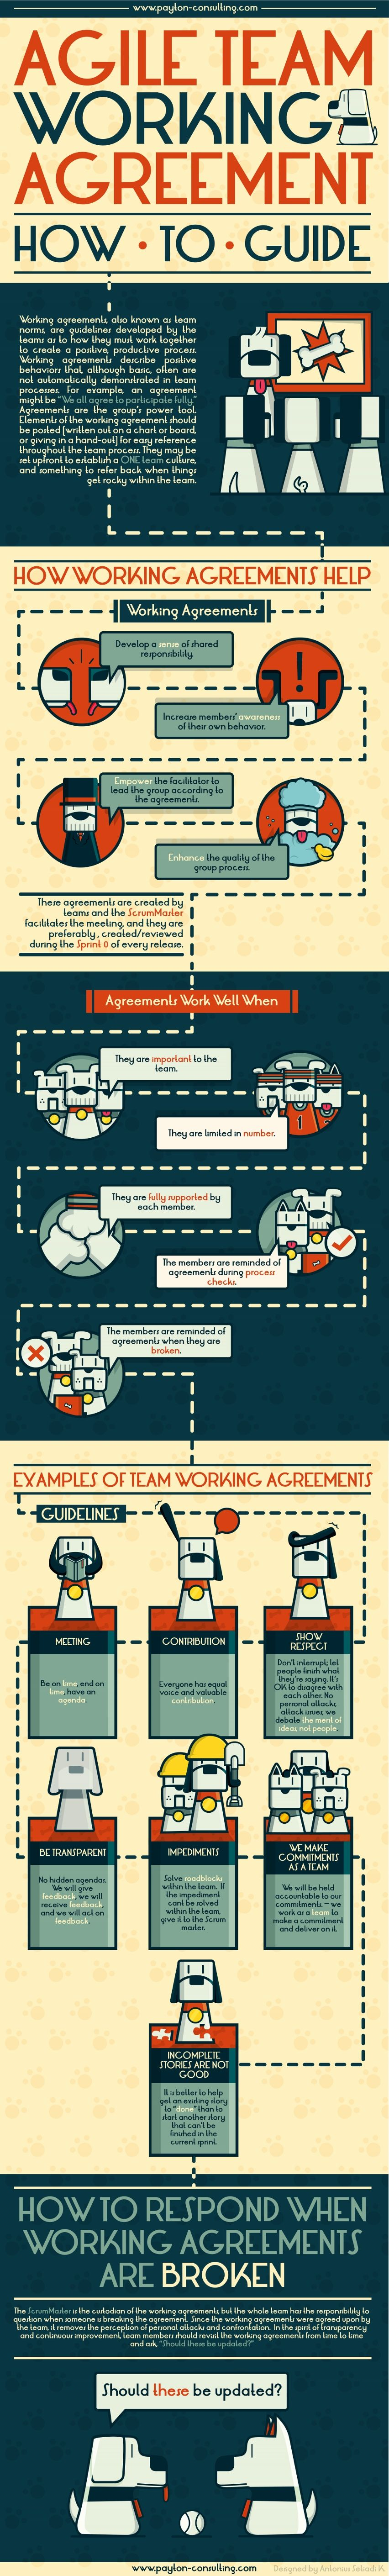 Agile Team Working Agreements Explanation And Template Successful